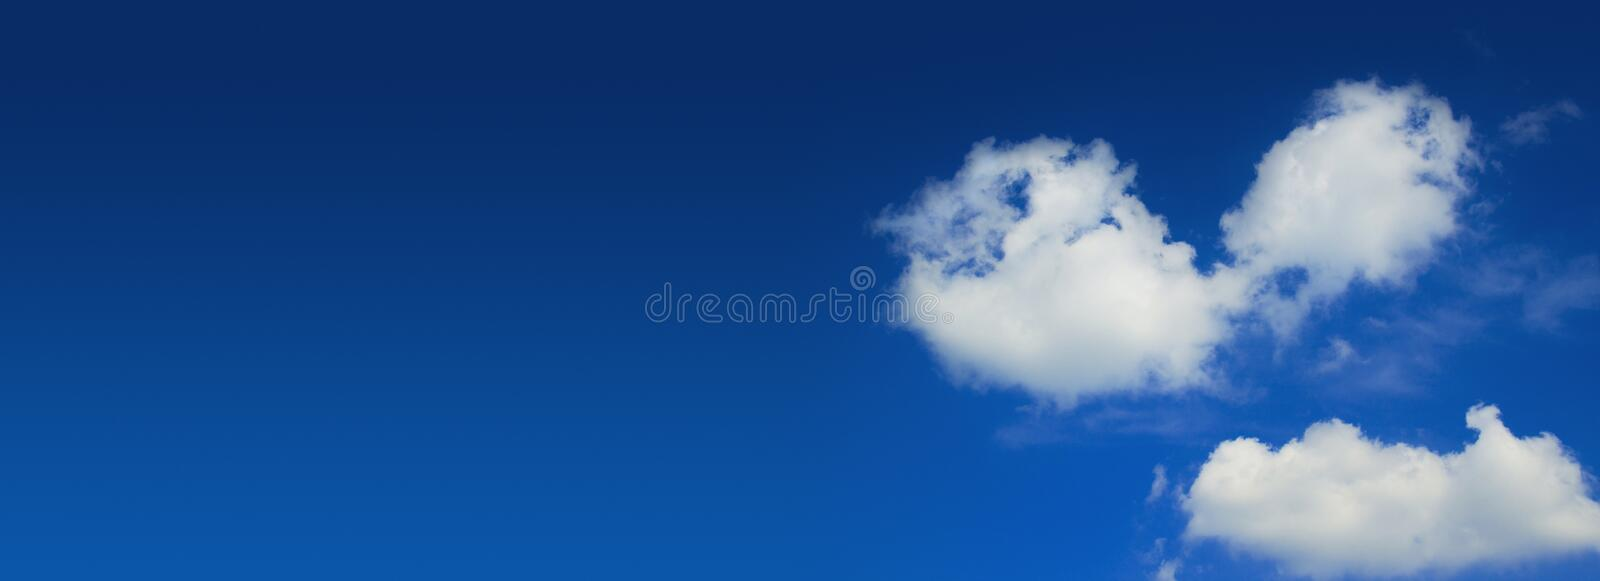 Download Blue sky wide panorama stock image. Image of panorama - 14531733